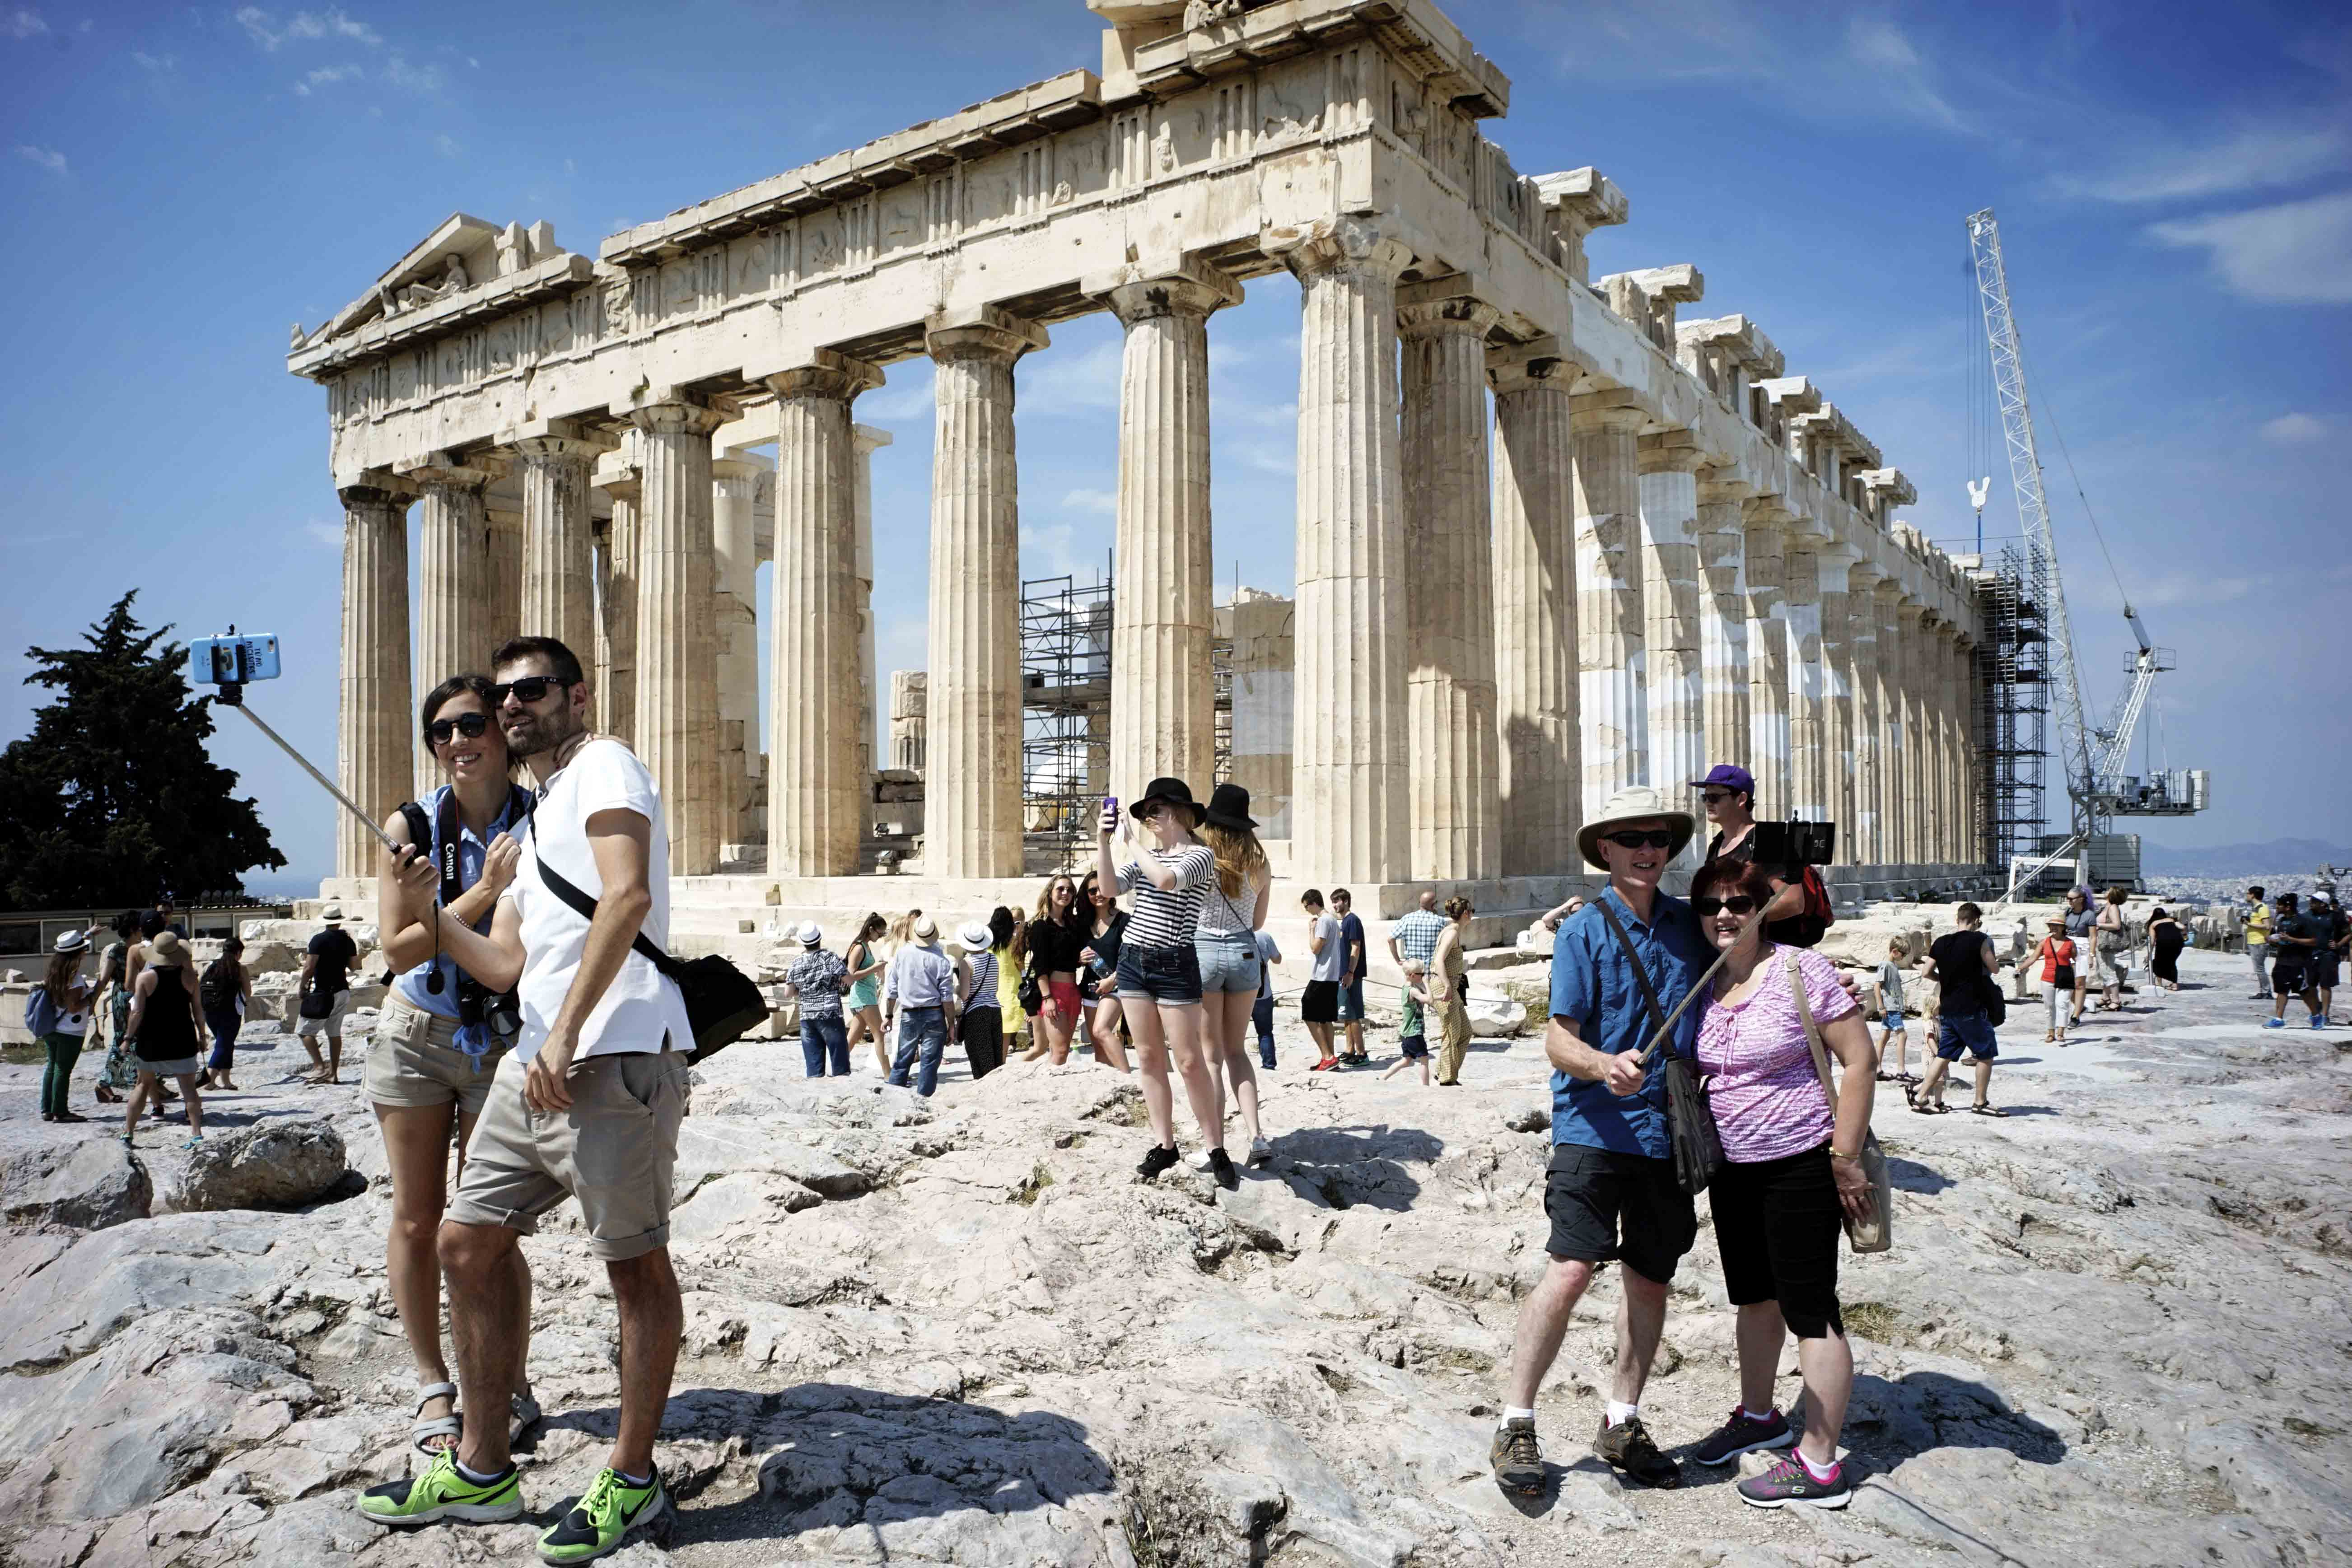 Tourists taking selfies in front of the Acropolis in Greece.